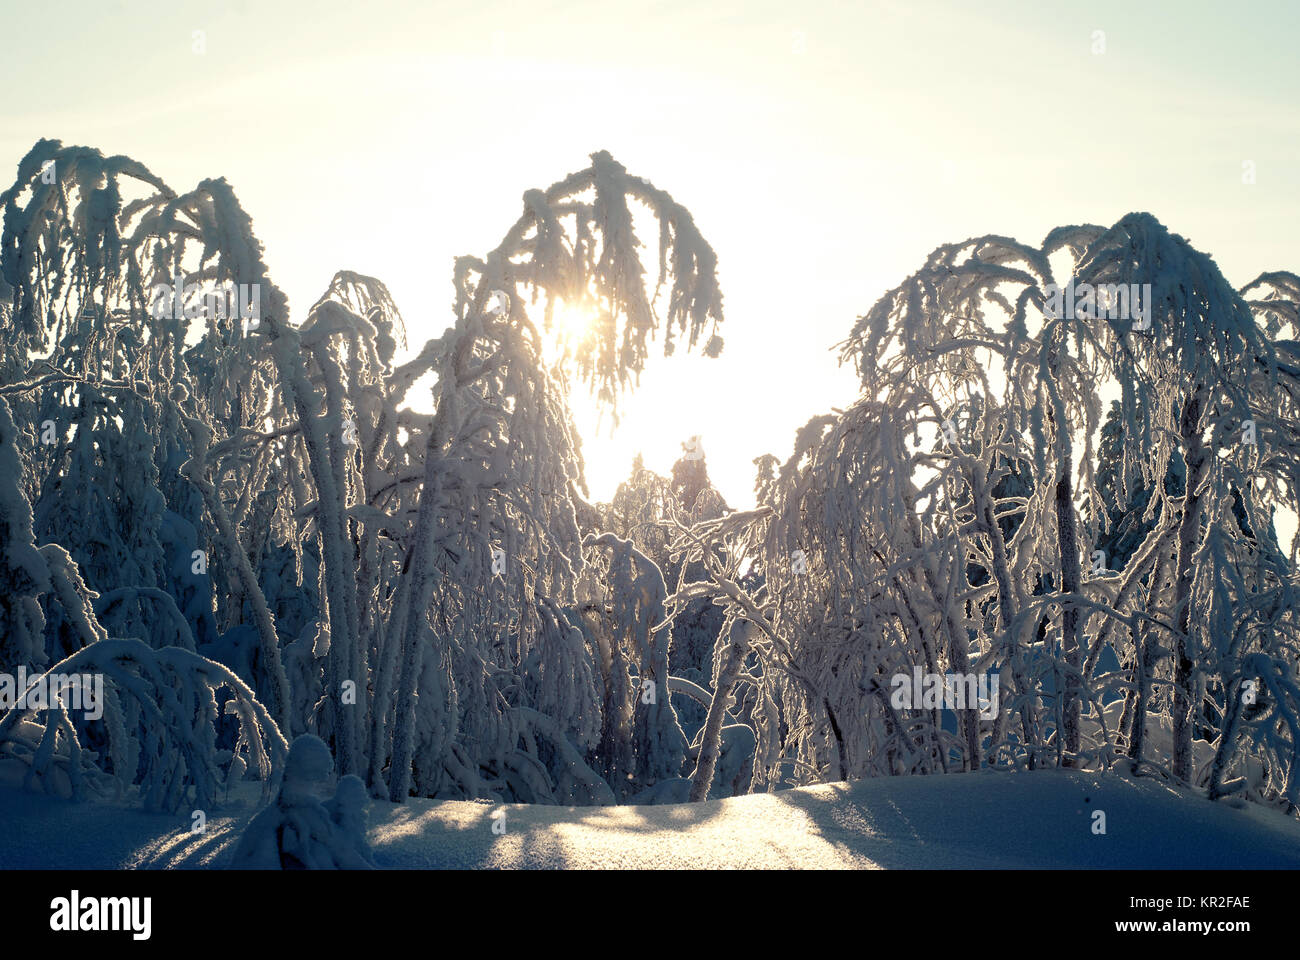 northern forest, covered with deep snow, shot in the low-light backlight; the sun shines through the snowy branches - Stock Image